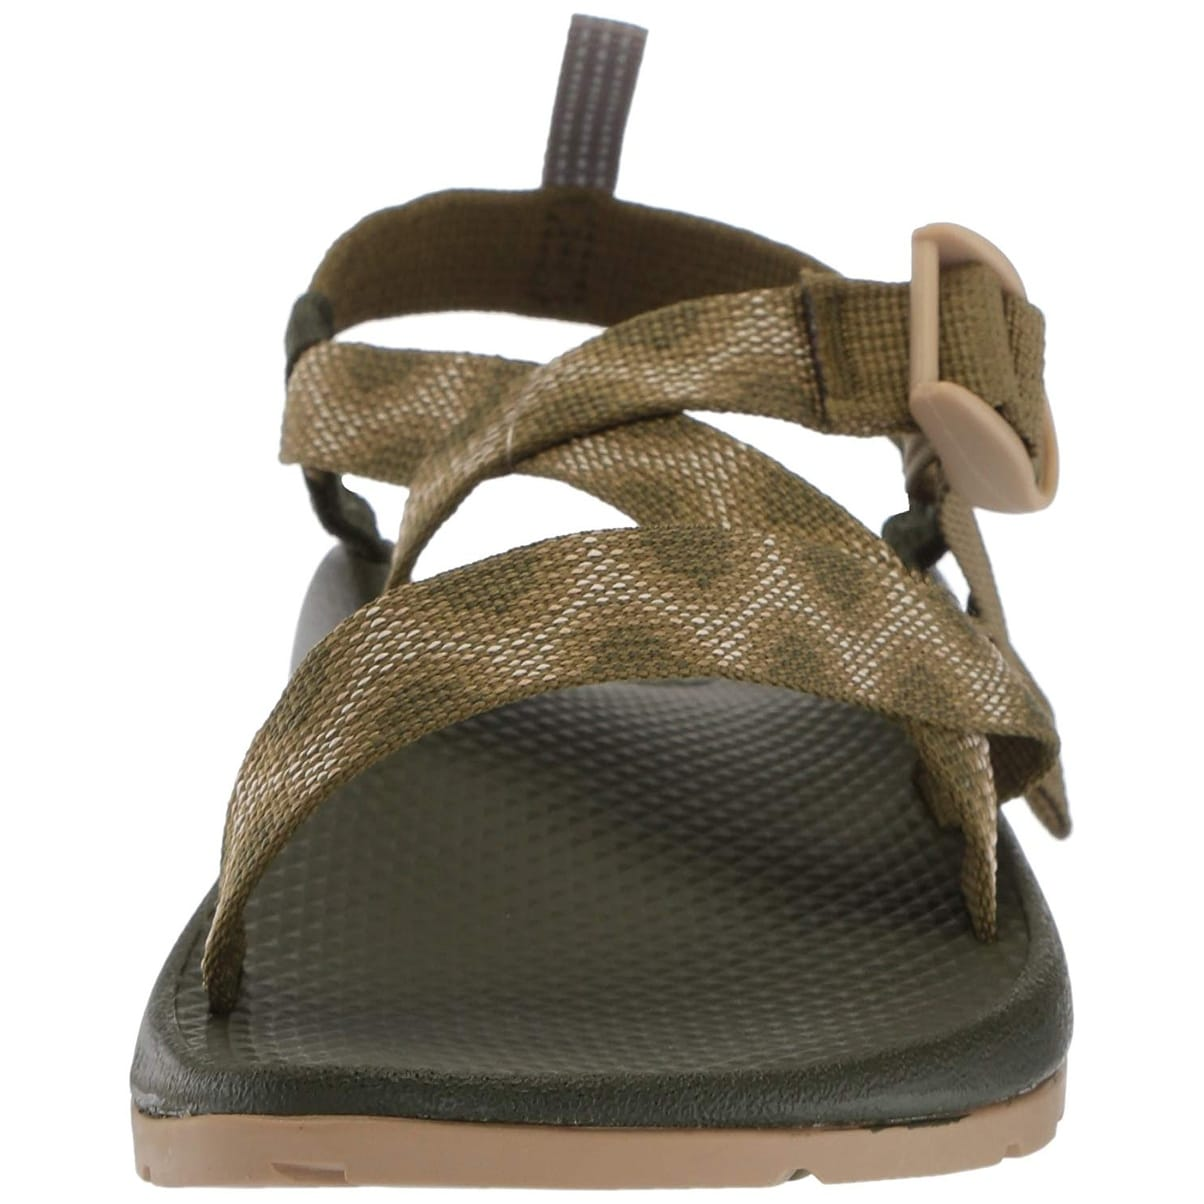 d97af72c14256 Shop Chaco Z1 Ecotread Sandal (Toddler Little Kid Big Kid) - Free Shipping  On Orders Over  45 - Overstock - 22882599